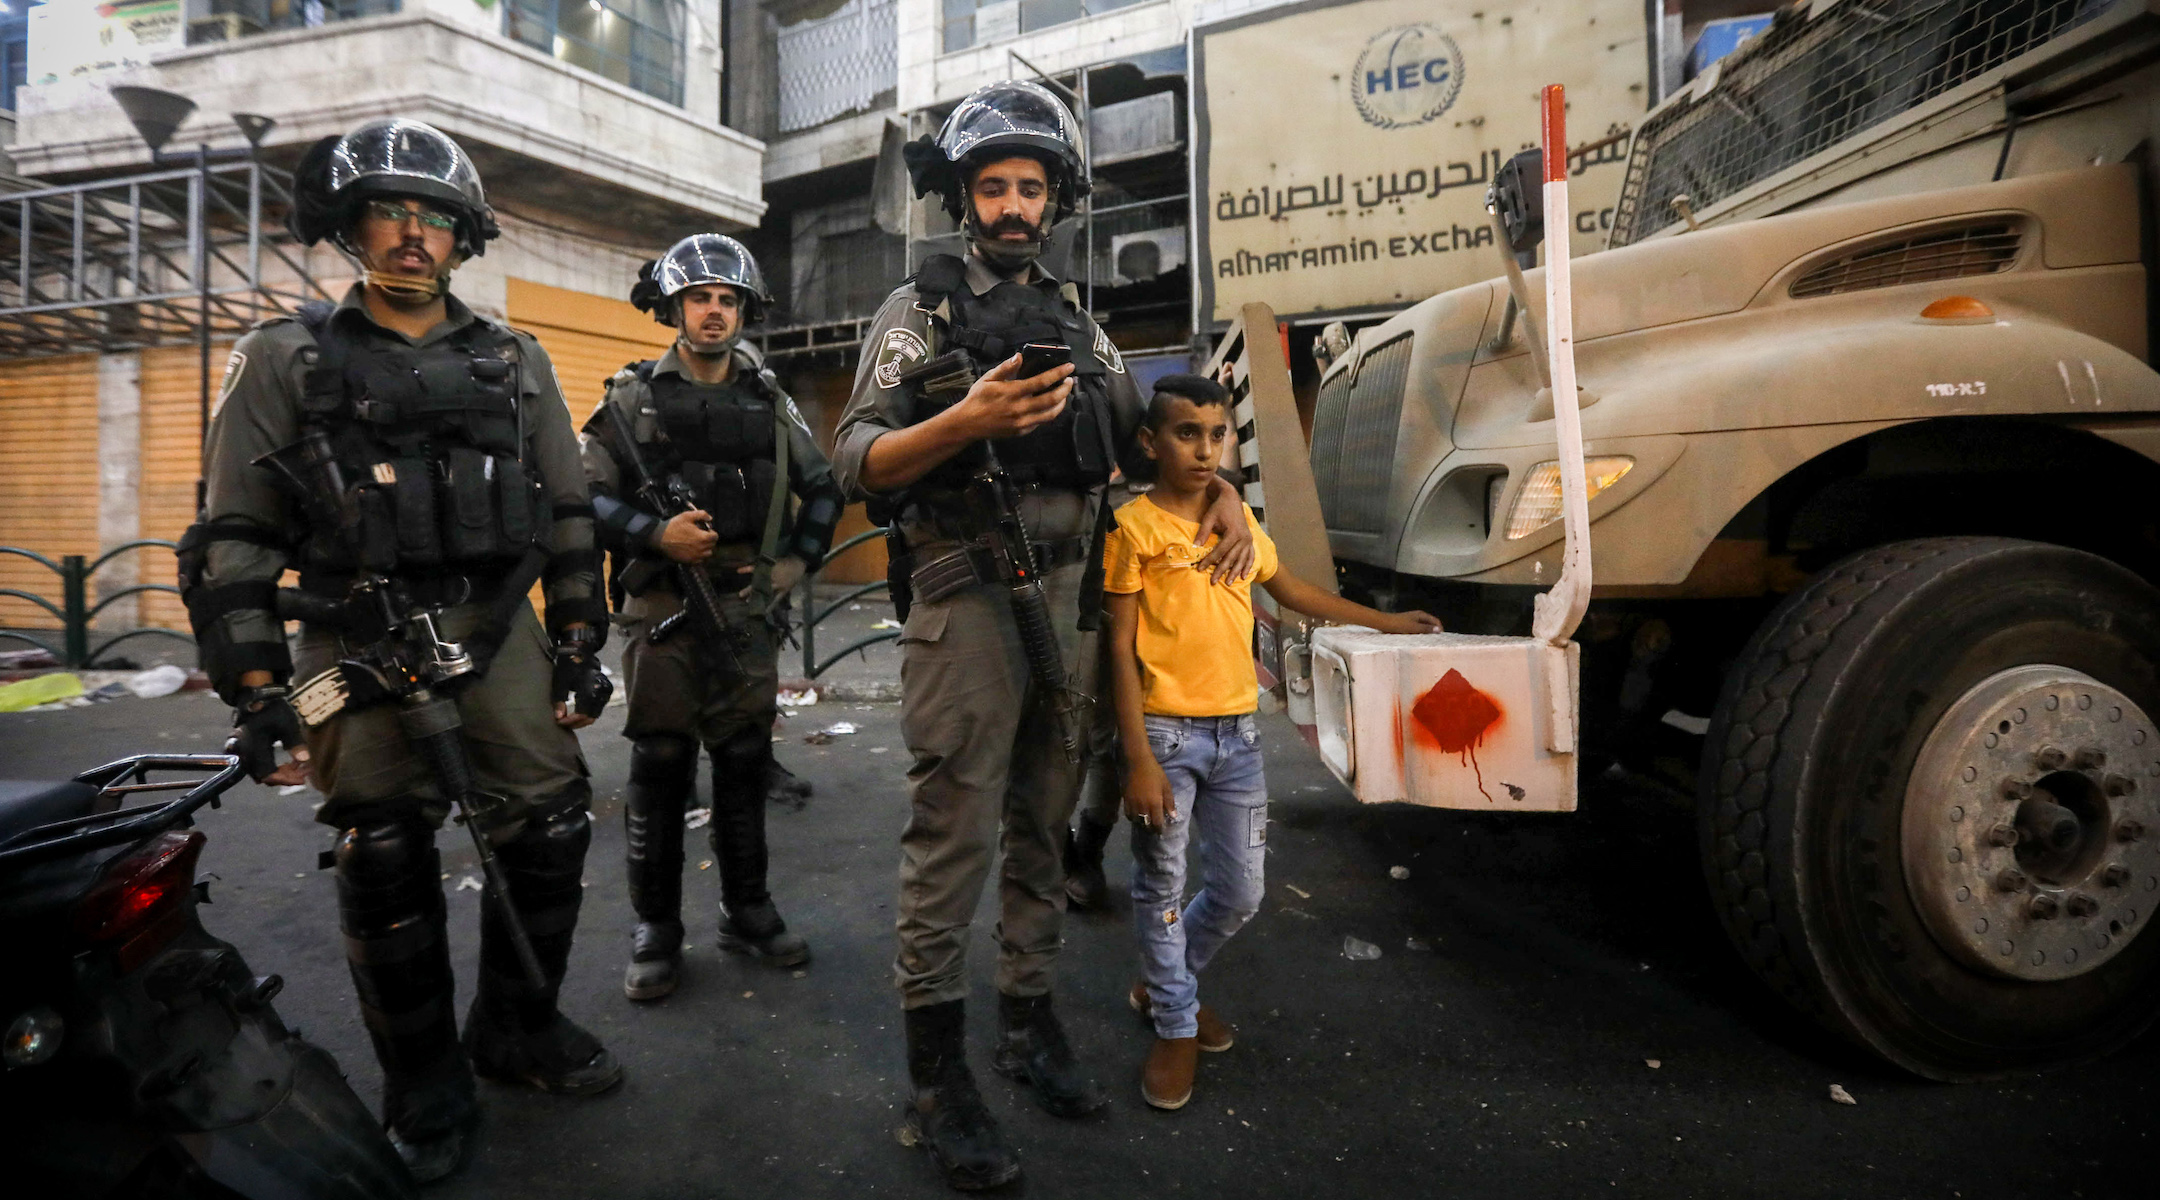 Israeli border police officers arrest a Palestinian youth during clashes with Palestinian protesters in the West Bank city of Hebron, Aug. 11, 2019. Rashida Tlaib and Ilhan Omar were scheduled to visit Hebron and other parts of the West Bank. (Wisam Hashlamoun/Flash90)